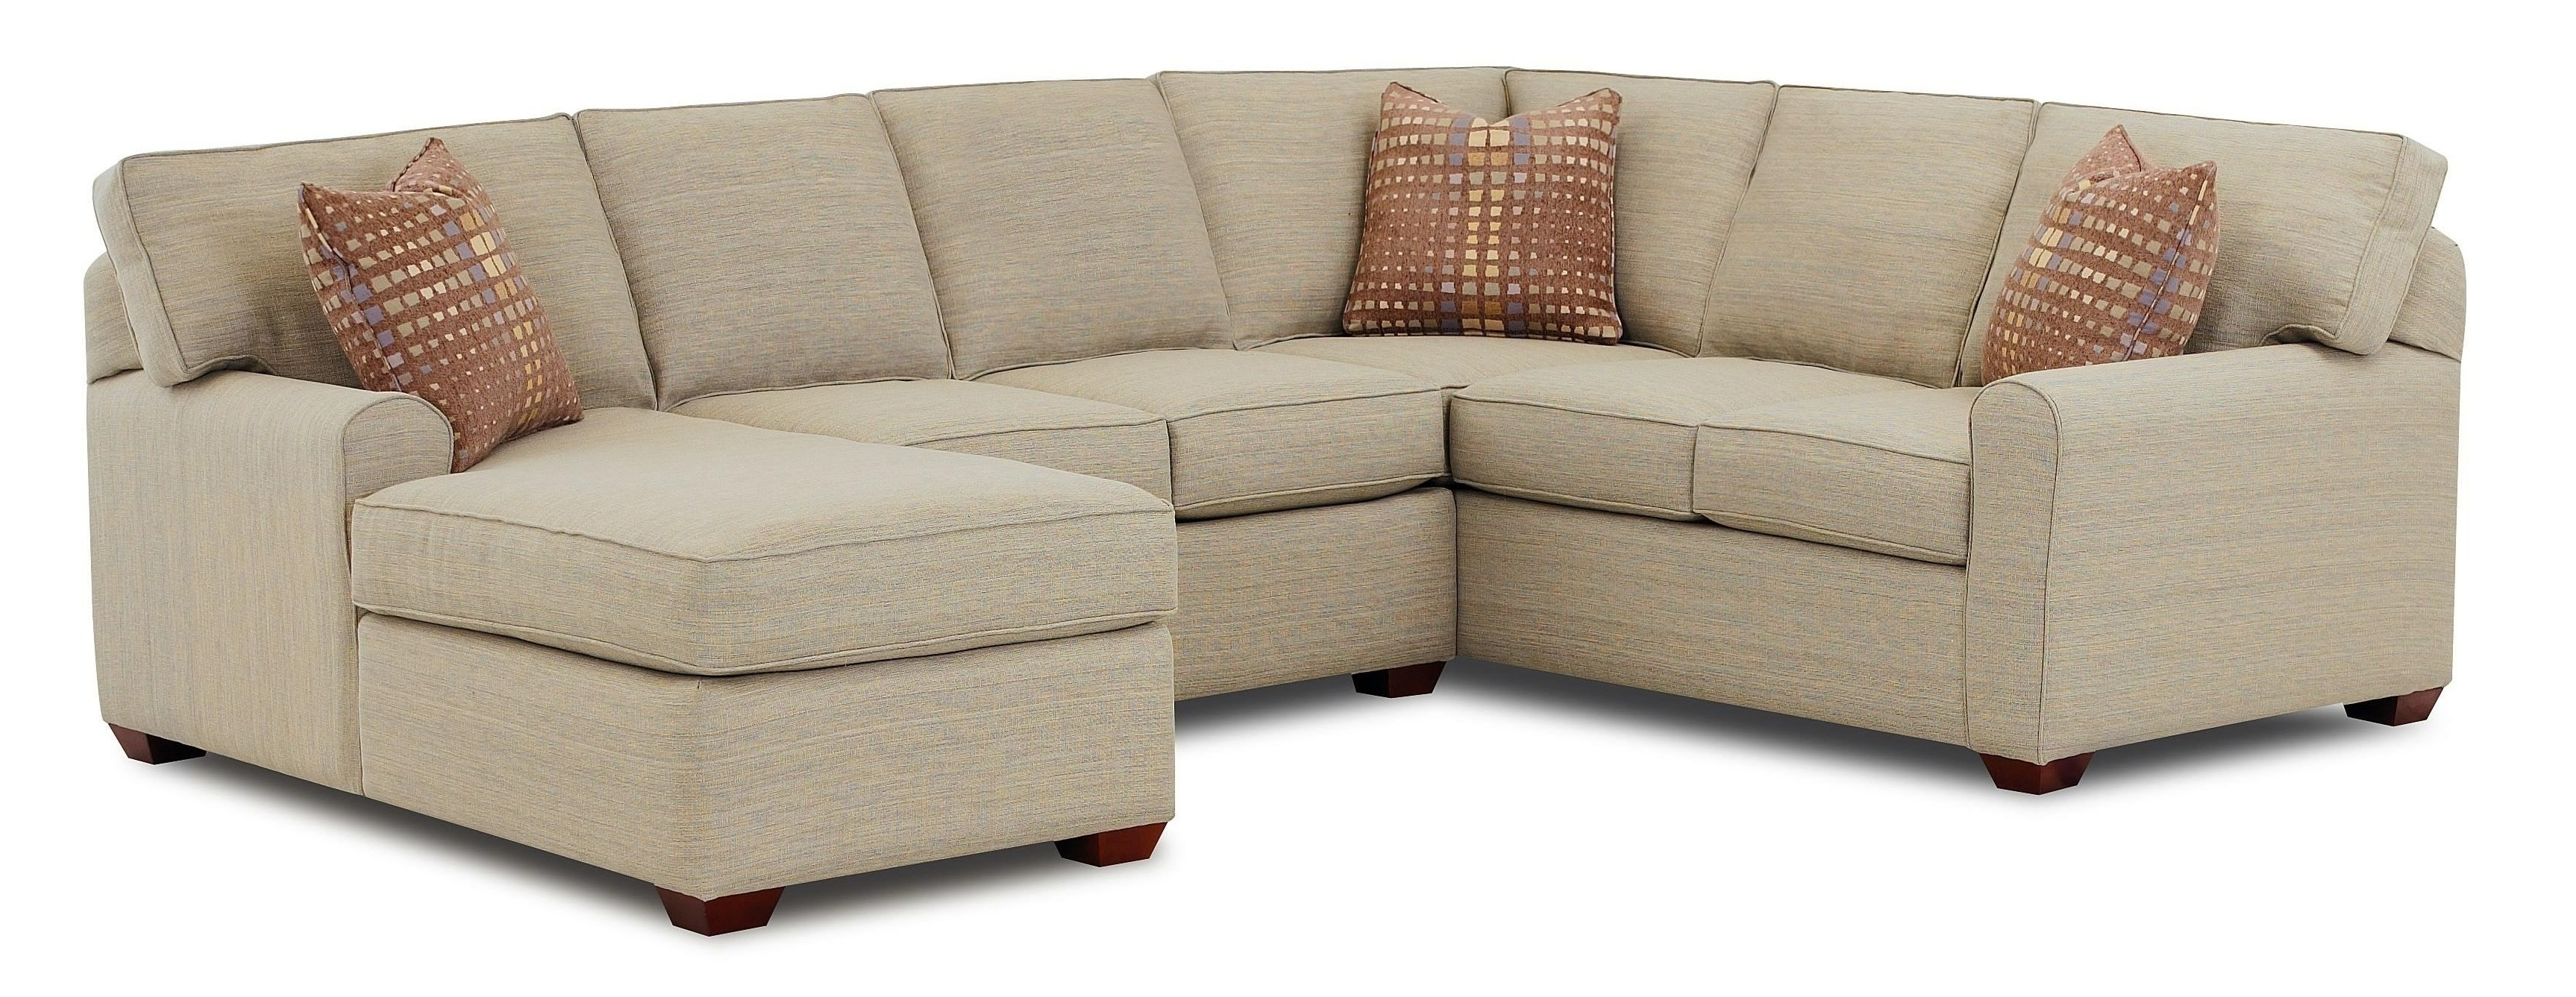 Widely Used Sectional Sofa Design: Small Sectional Sofa With Chaise Lounge Inside Small Sectional Sofas With Chaise Lounge (View 3 of 15)